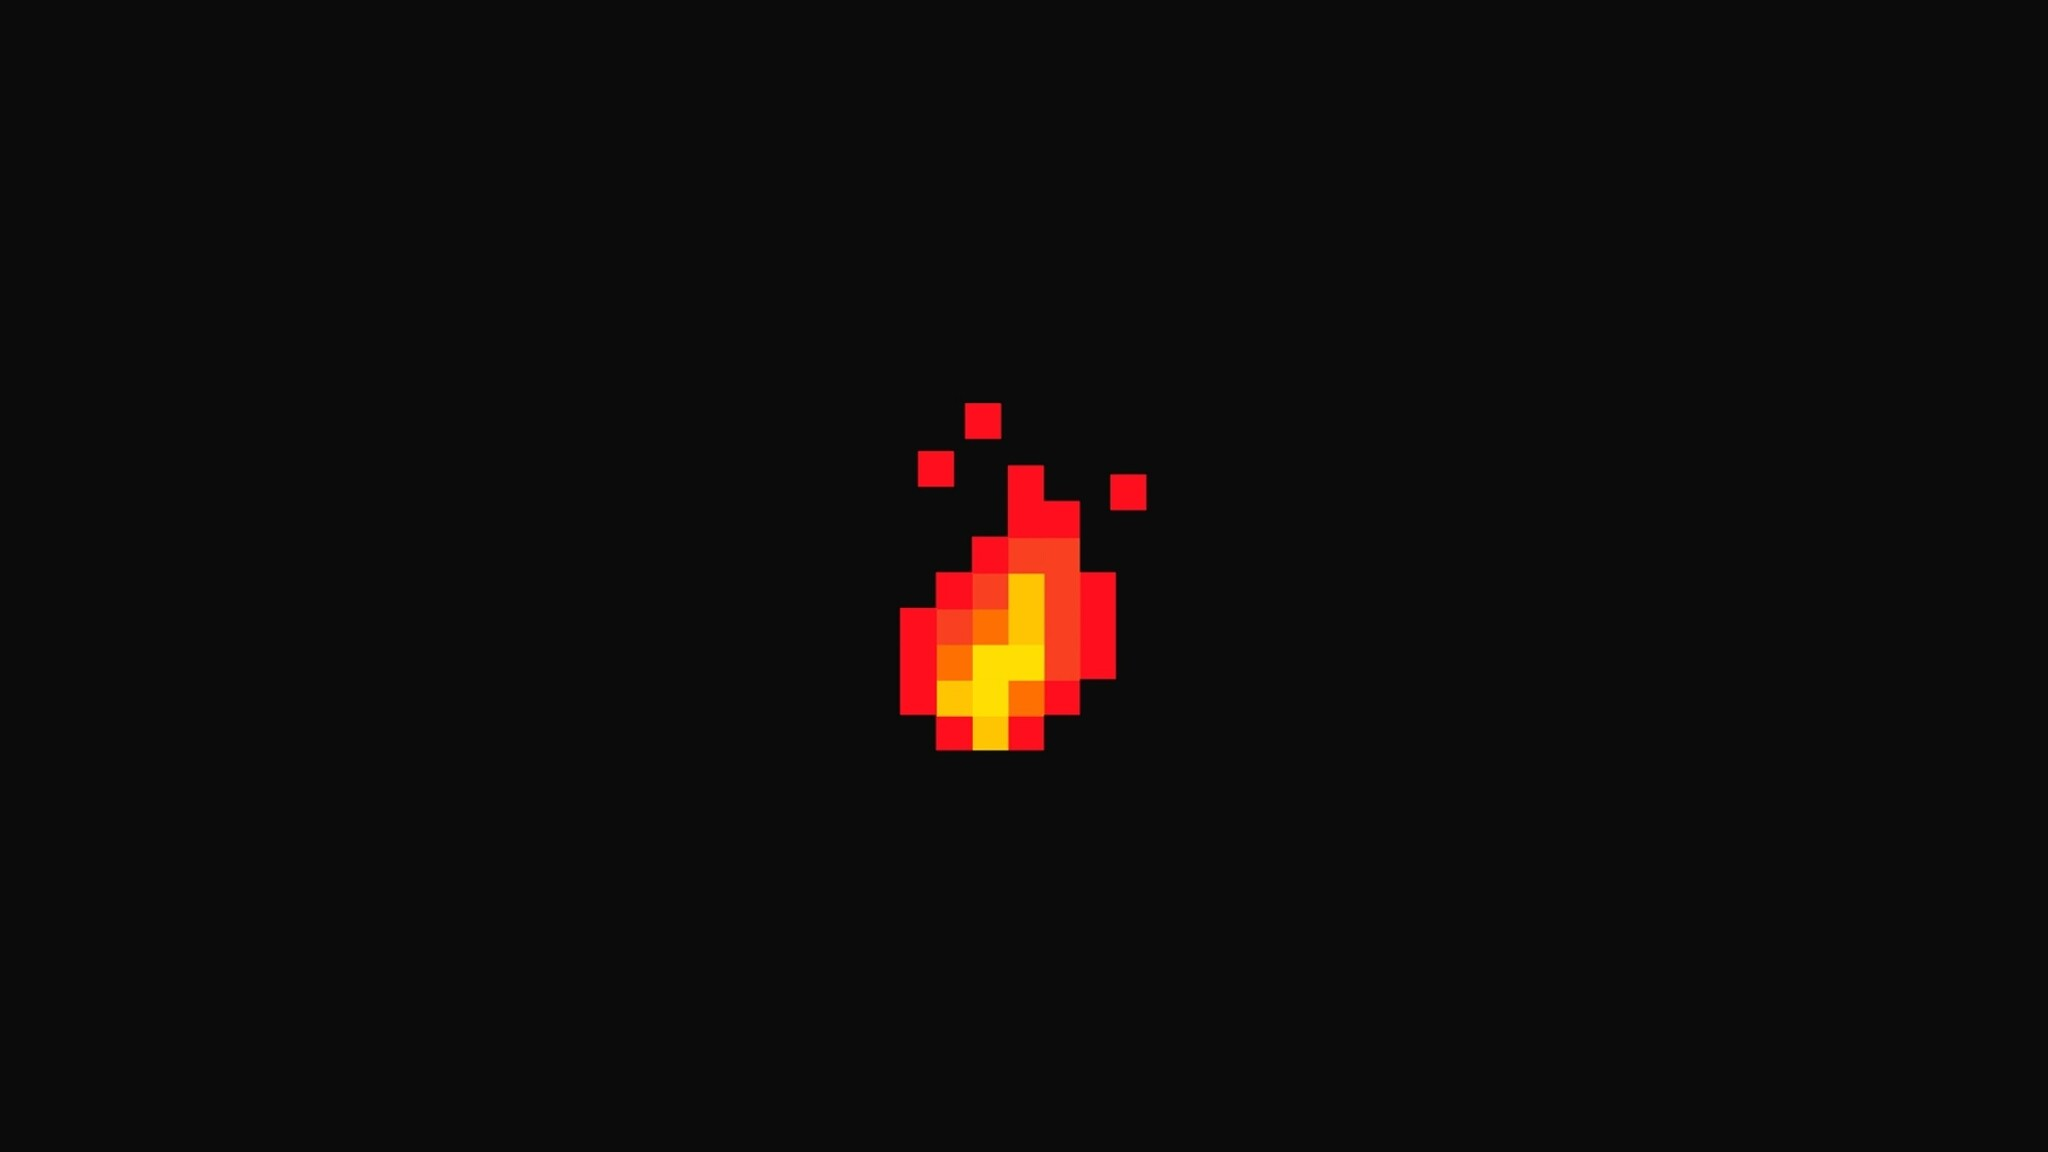 2048x1152 Fire Pixel Art 2048x1152 Resolution Hd 4k